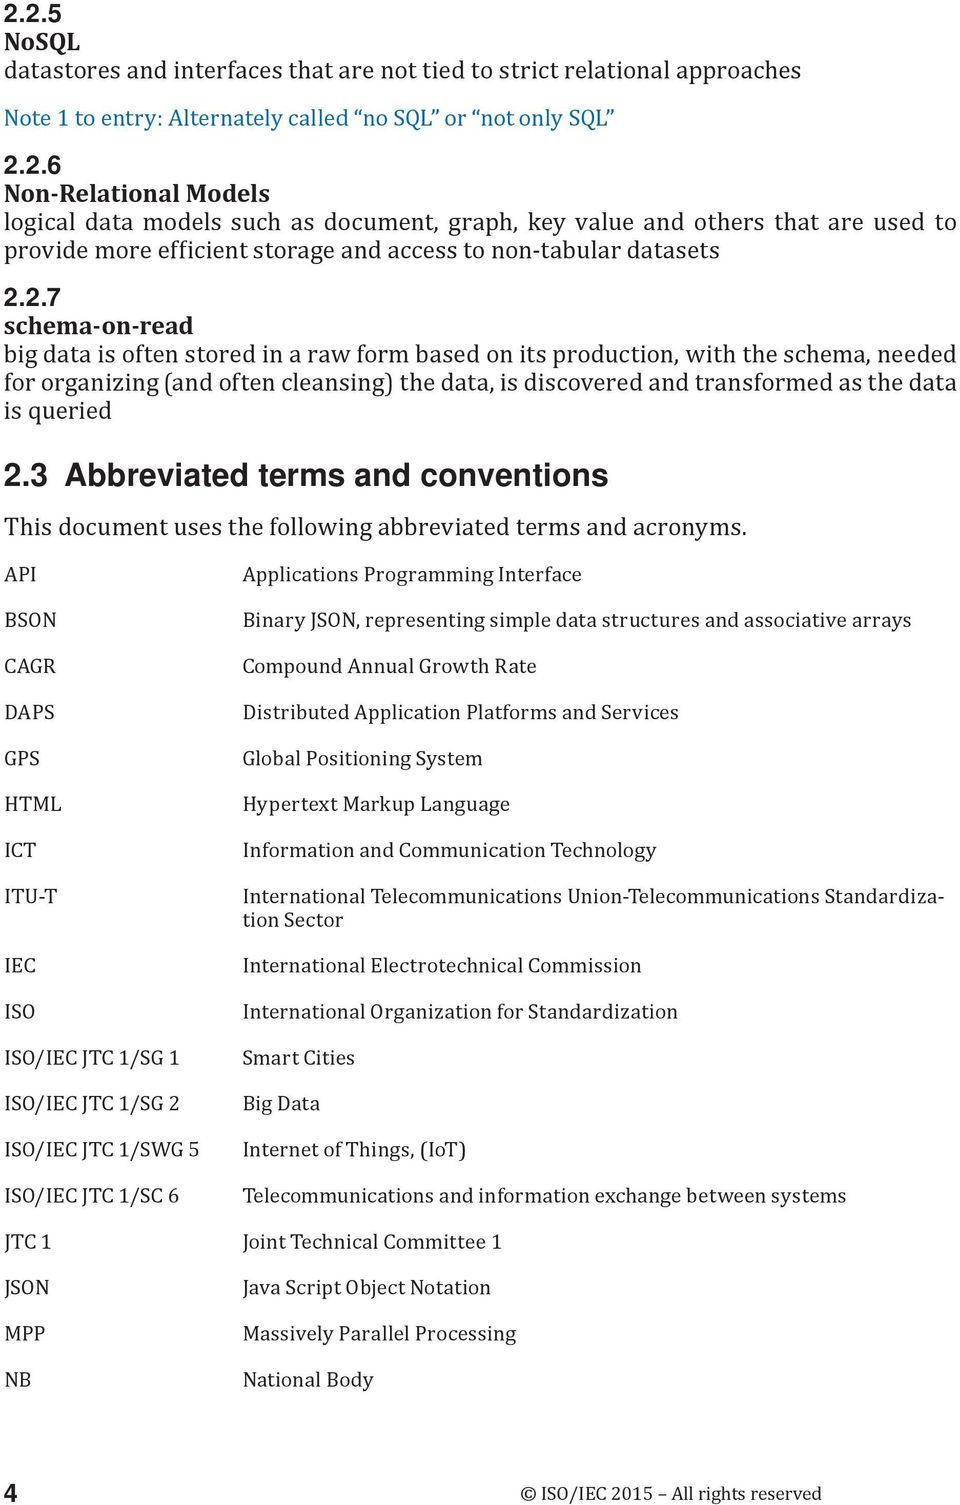 queried 2.3 Abbreviated terms and conventions This document uses the following abbreviated terms and acronyms.